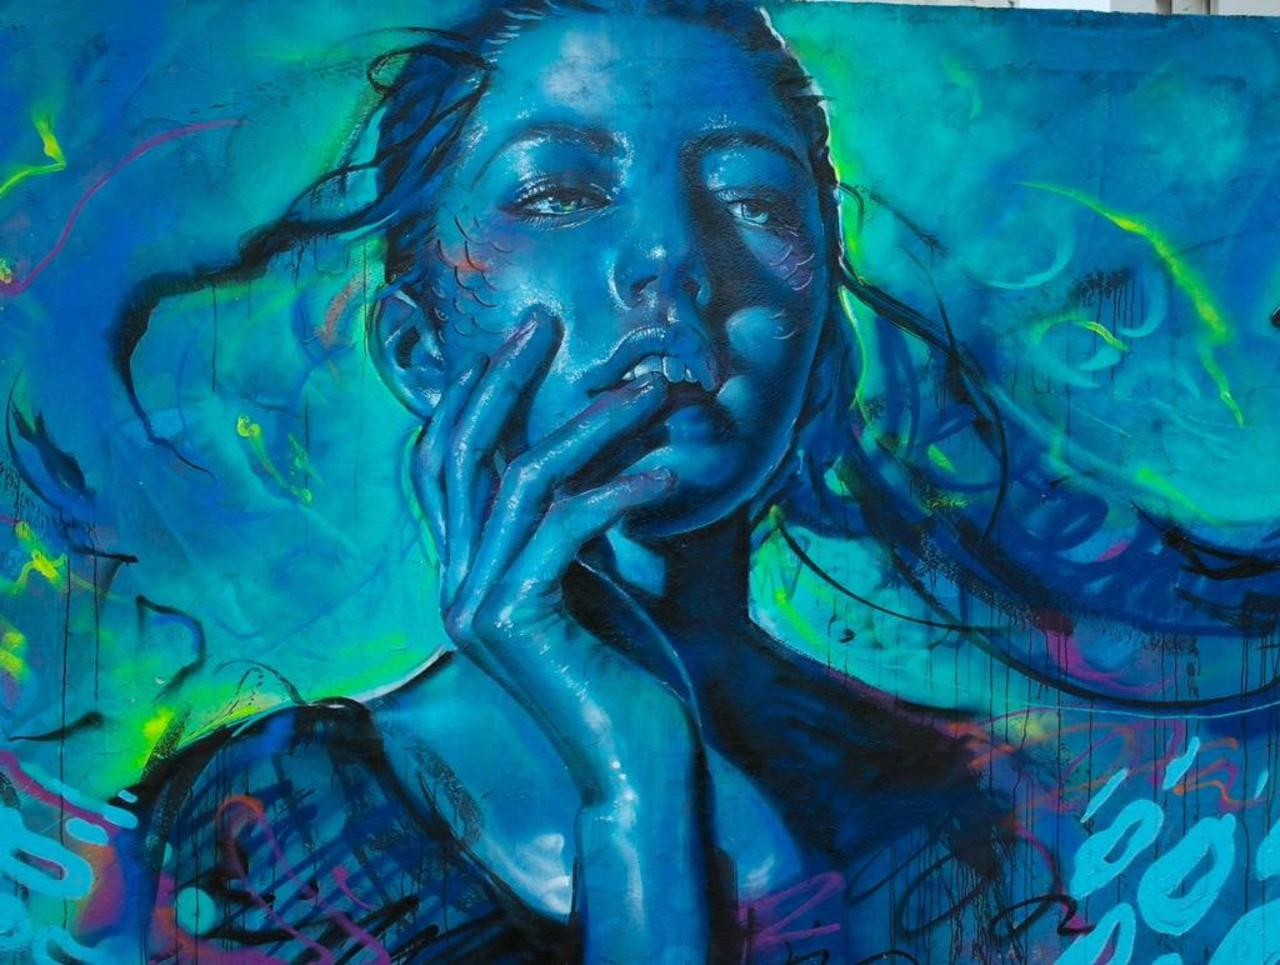 RT @GoogleStreetArt: Thiago Valdi latest Street Art piece titled 'Day Dreamer'  #art #mural #graffiti #streetart http://t.co/FZ7RYIBPhd